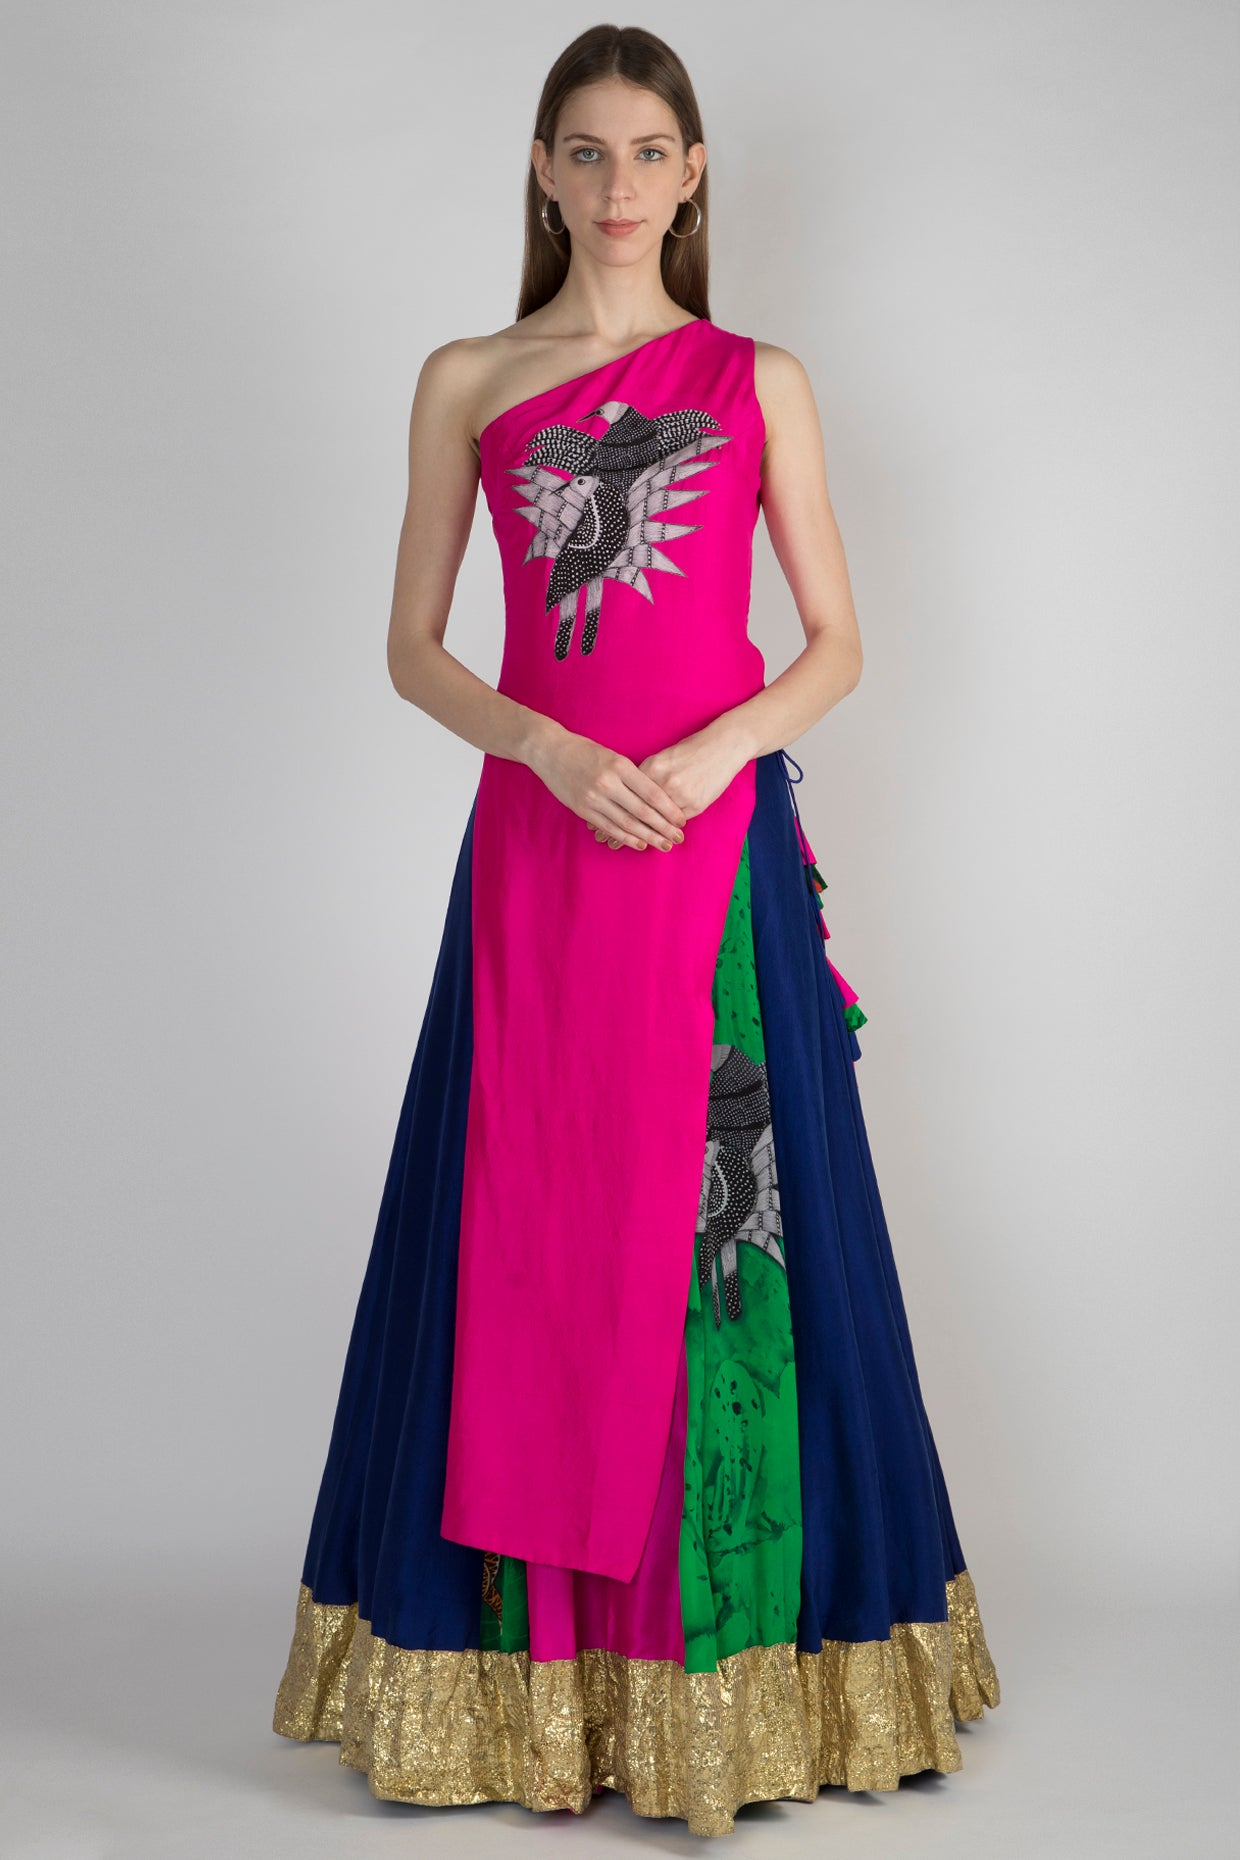 PINK SONGBIRDS APPLIQUE ONE SHOULDER ASYMMETRIC TOP & MULTIPANEL PRINTED LEHENGA WITH DUPATTA - The Grand Trunk